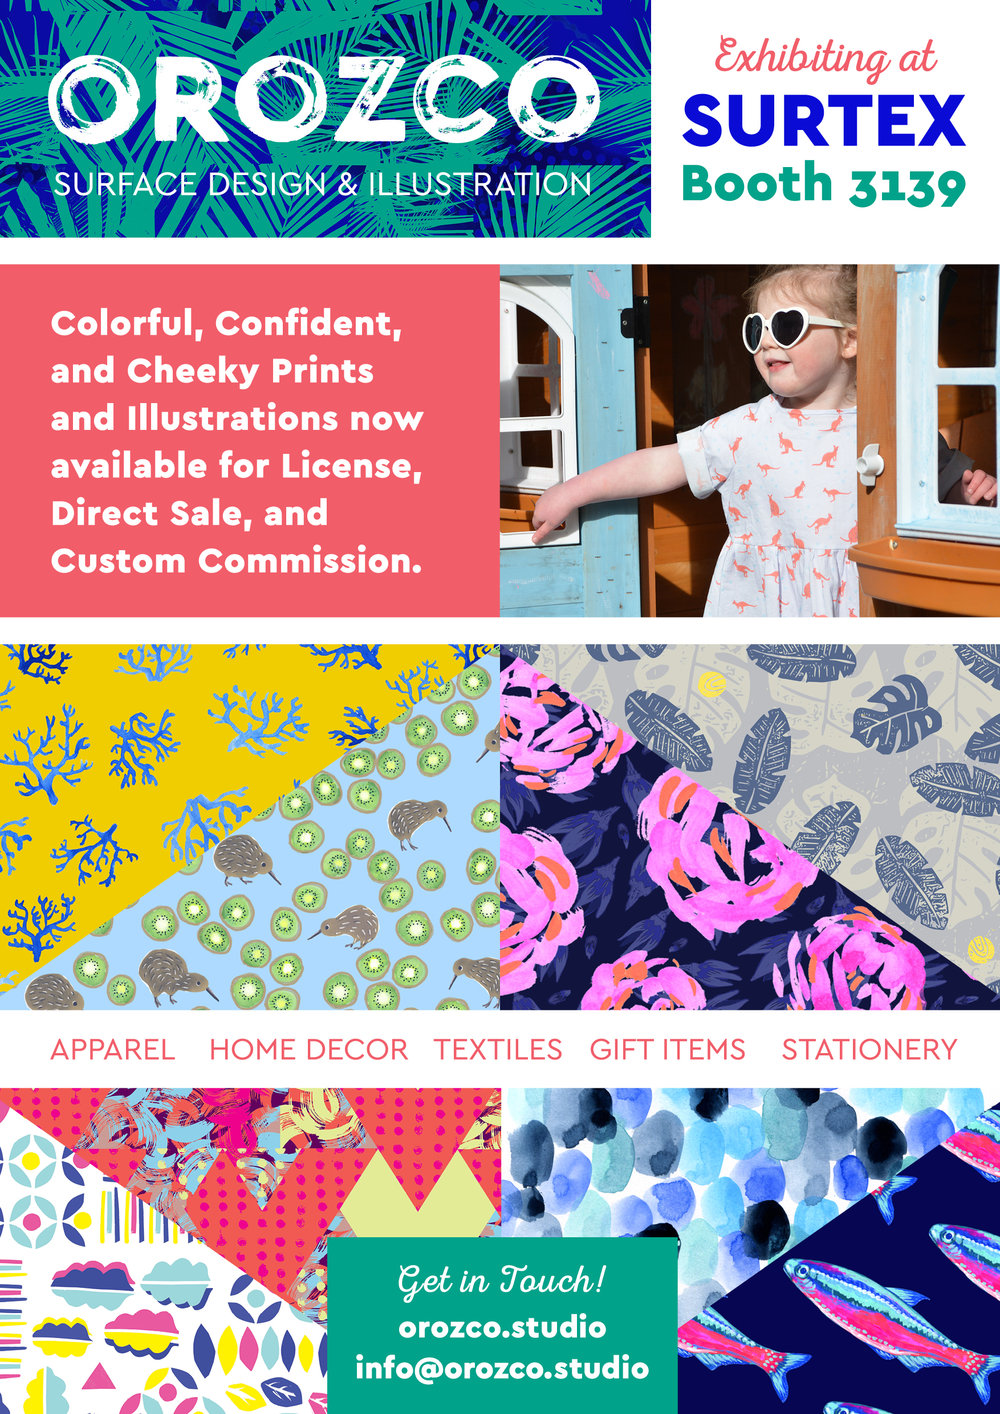 orozco-studio_art-licensing-sourcebook-surtex-ad